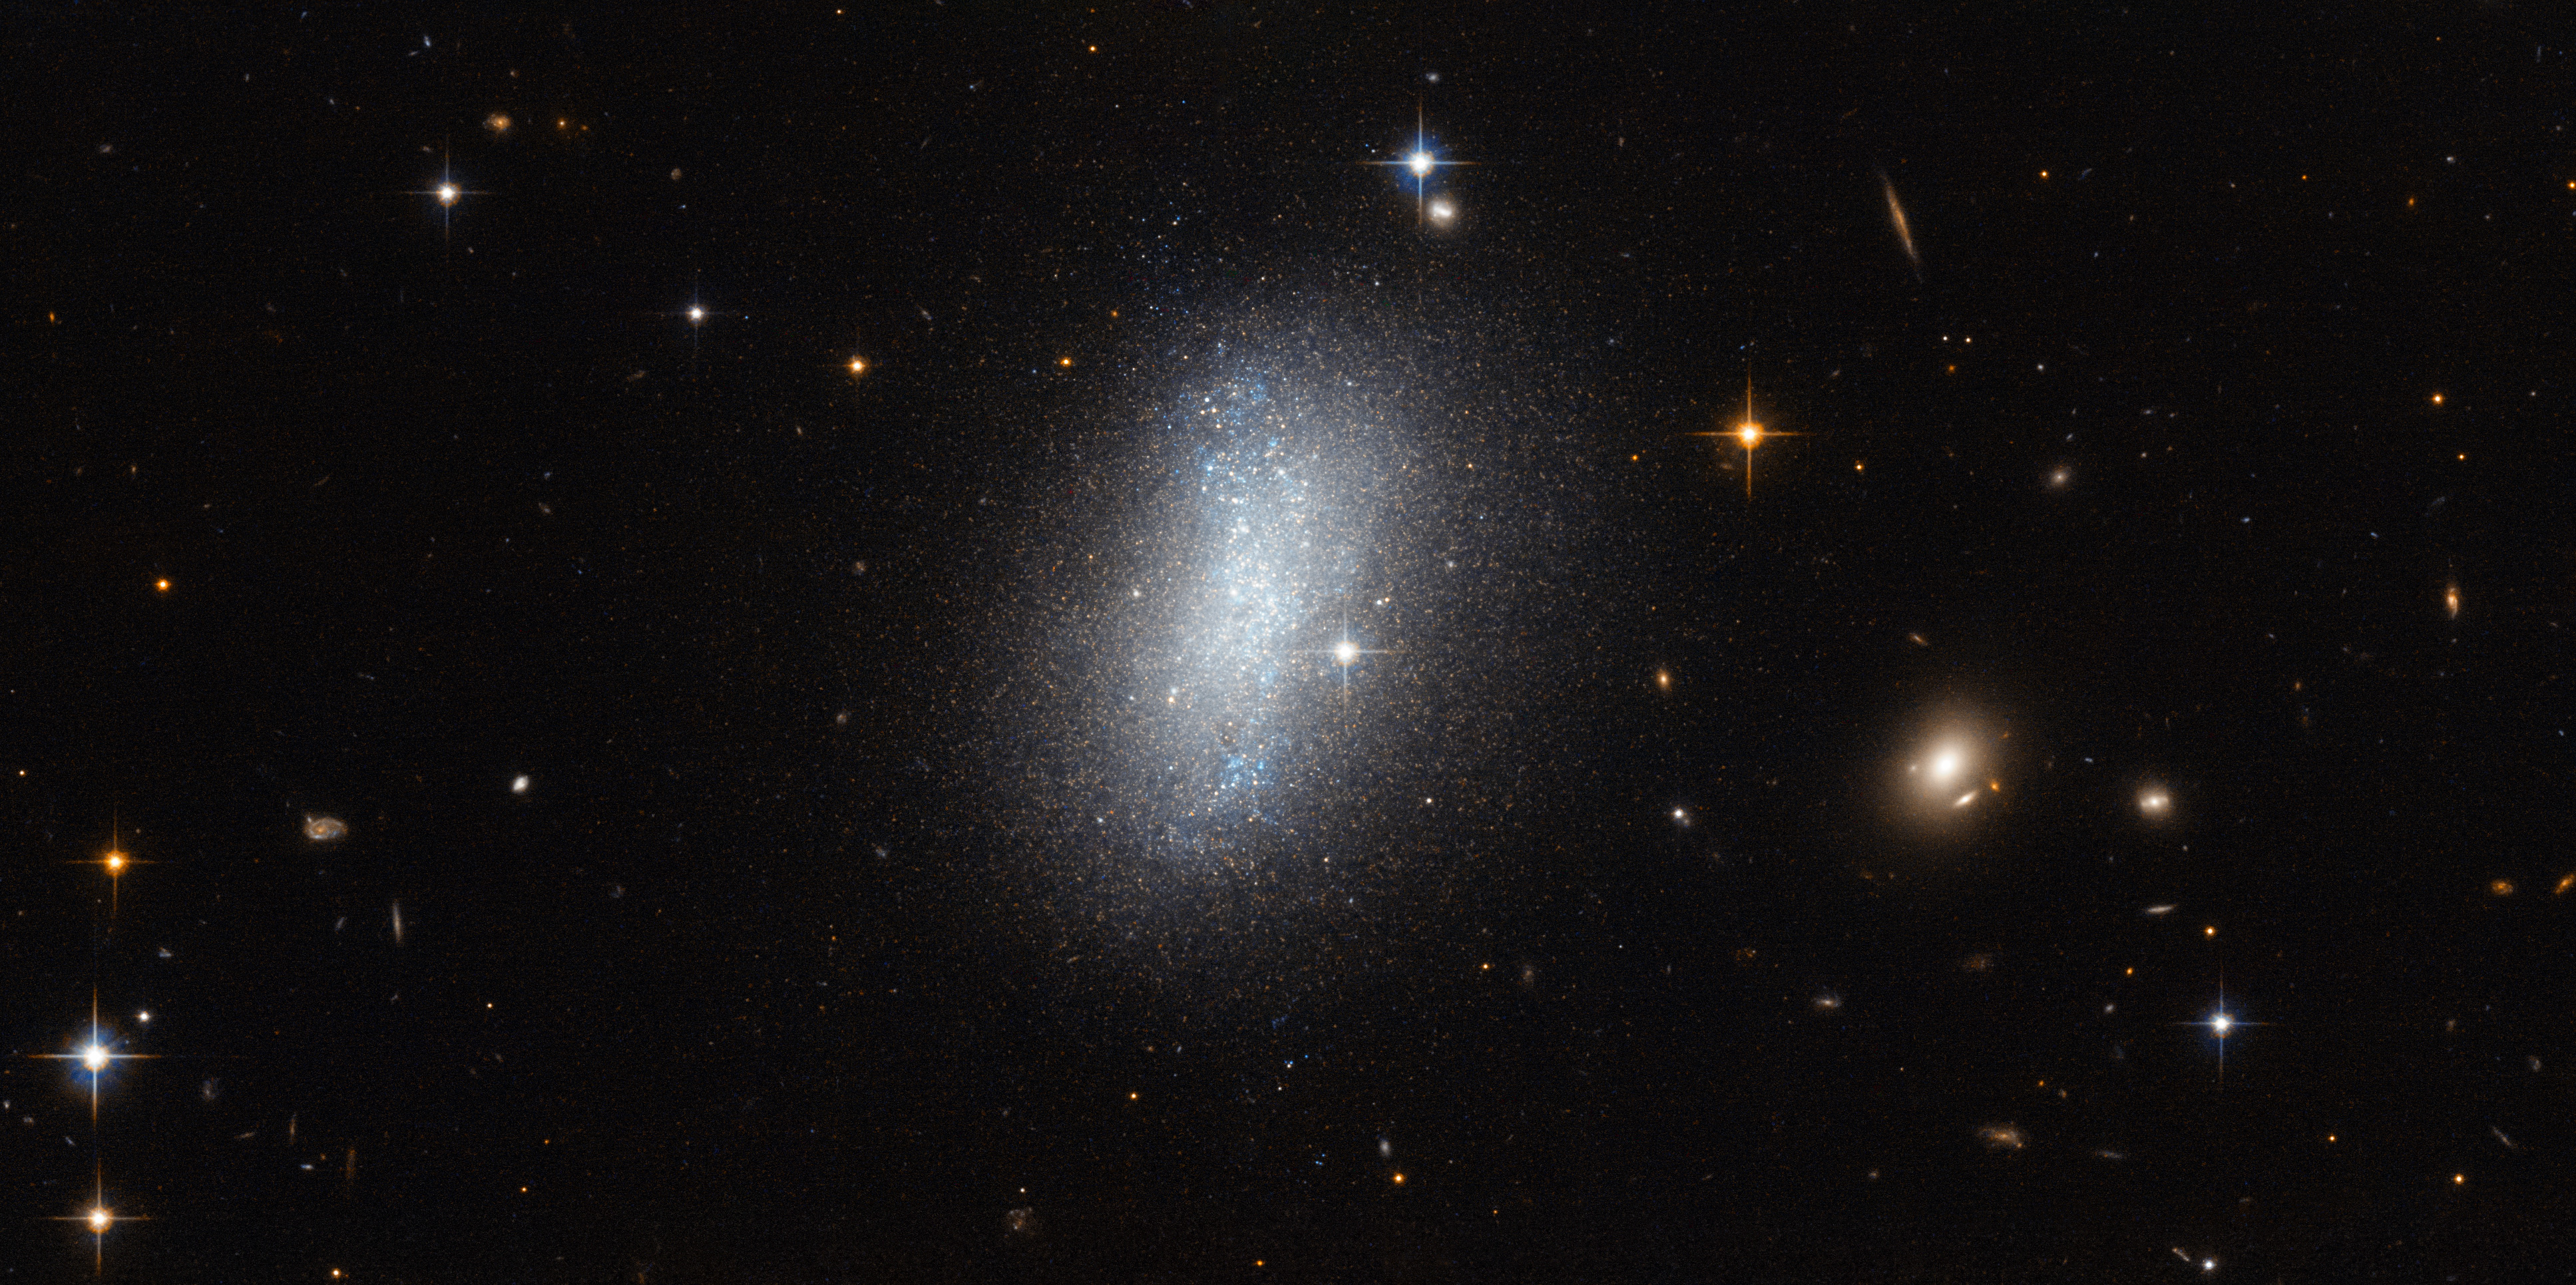 galaxies s and e - photo #15